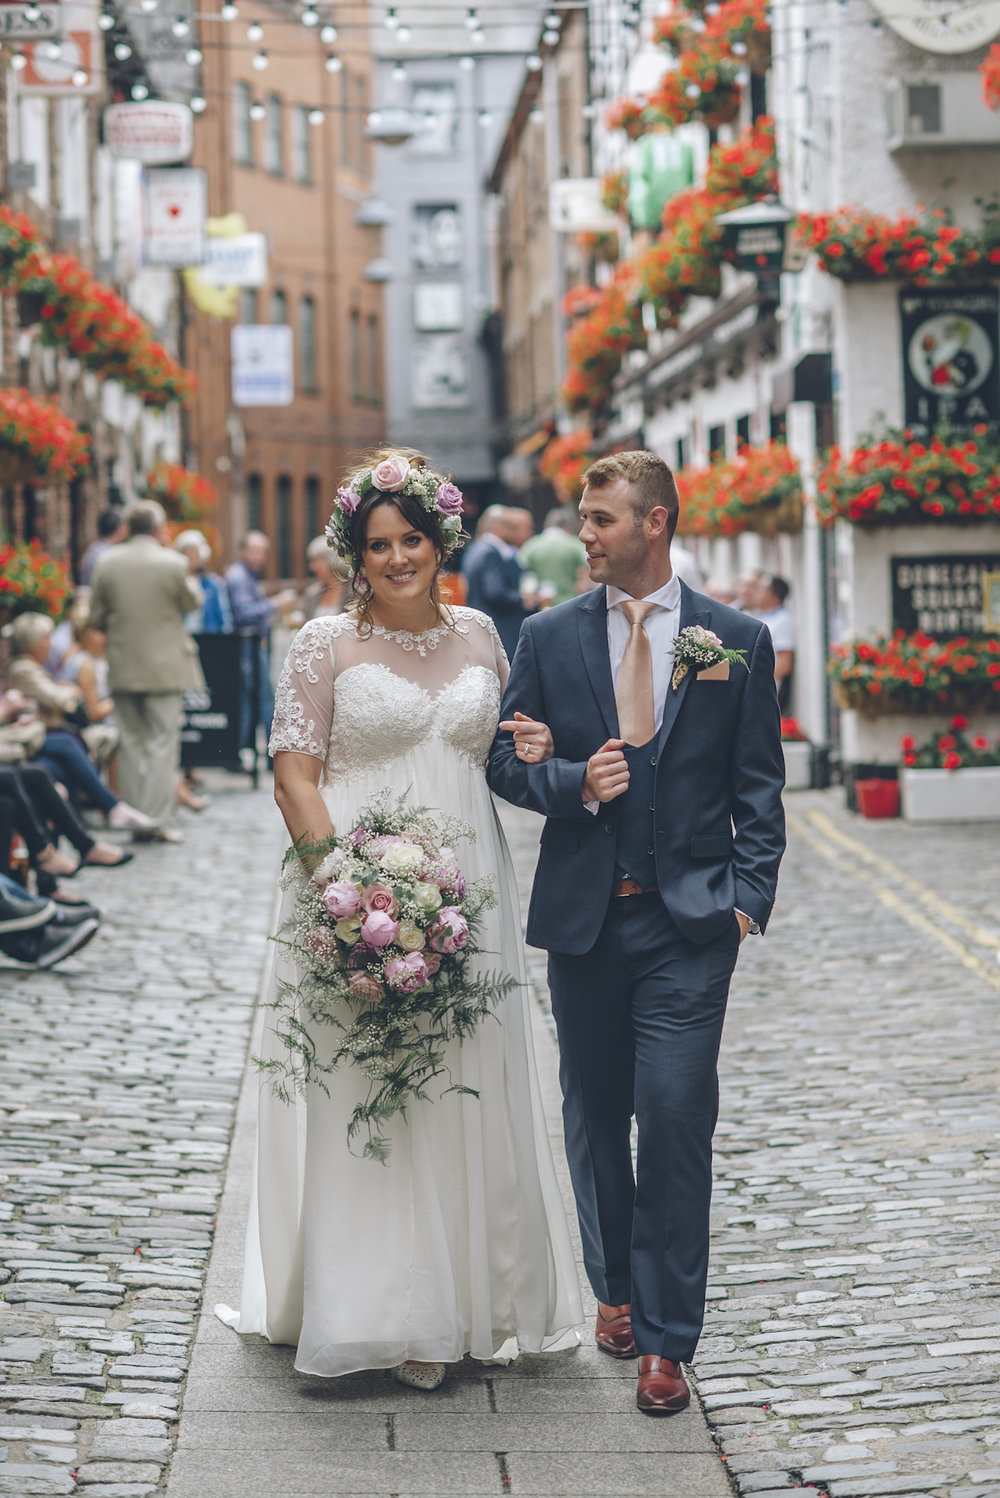 Francis_meaney_photography_merchant_hotel_wedding_belfast_inspire_weddings_6.jpeg